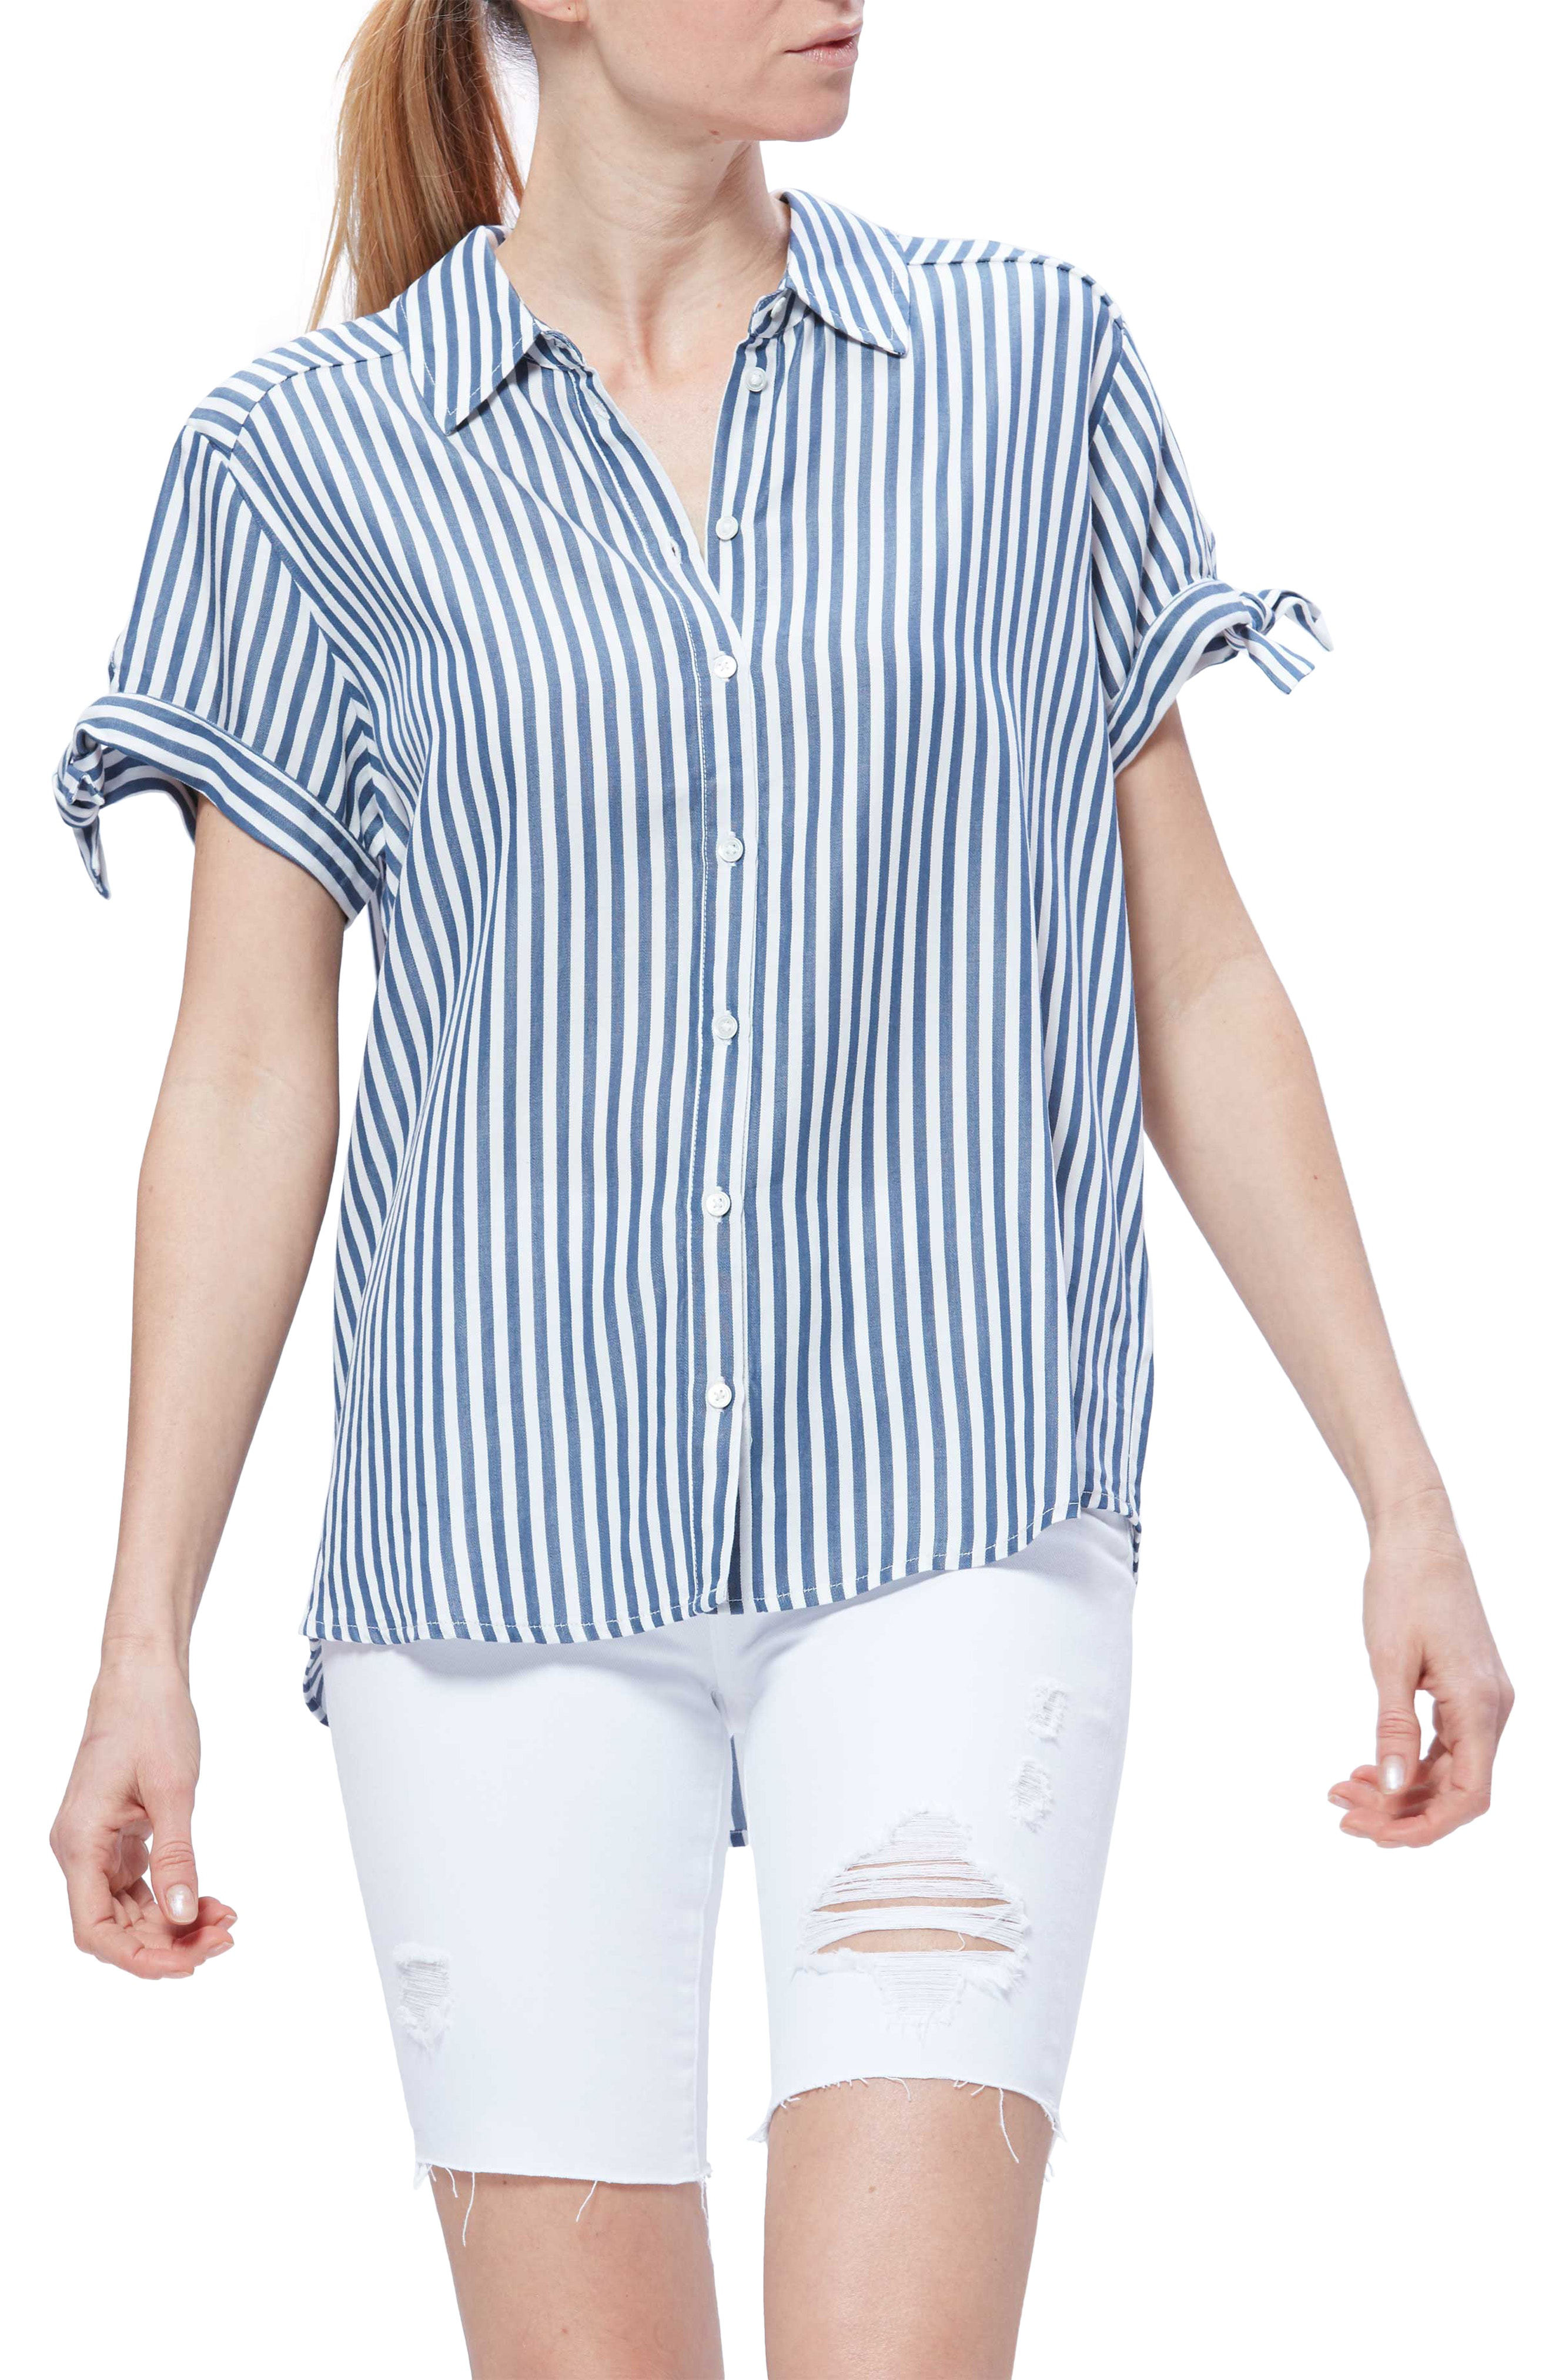 079c43803 Avery Tie Sleeve Button-Up Shirt in Navy/ White